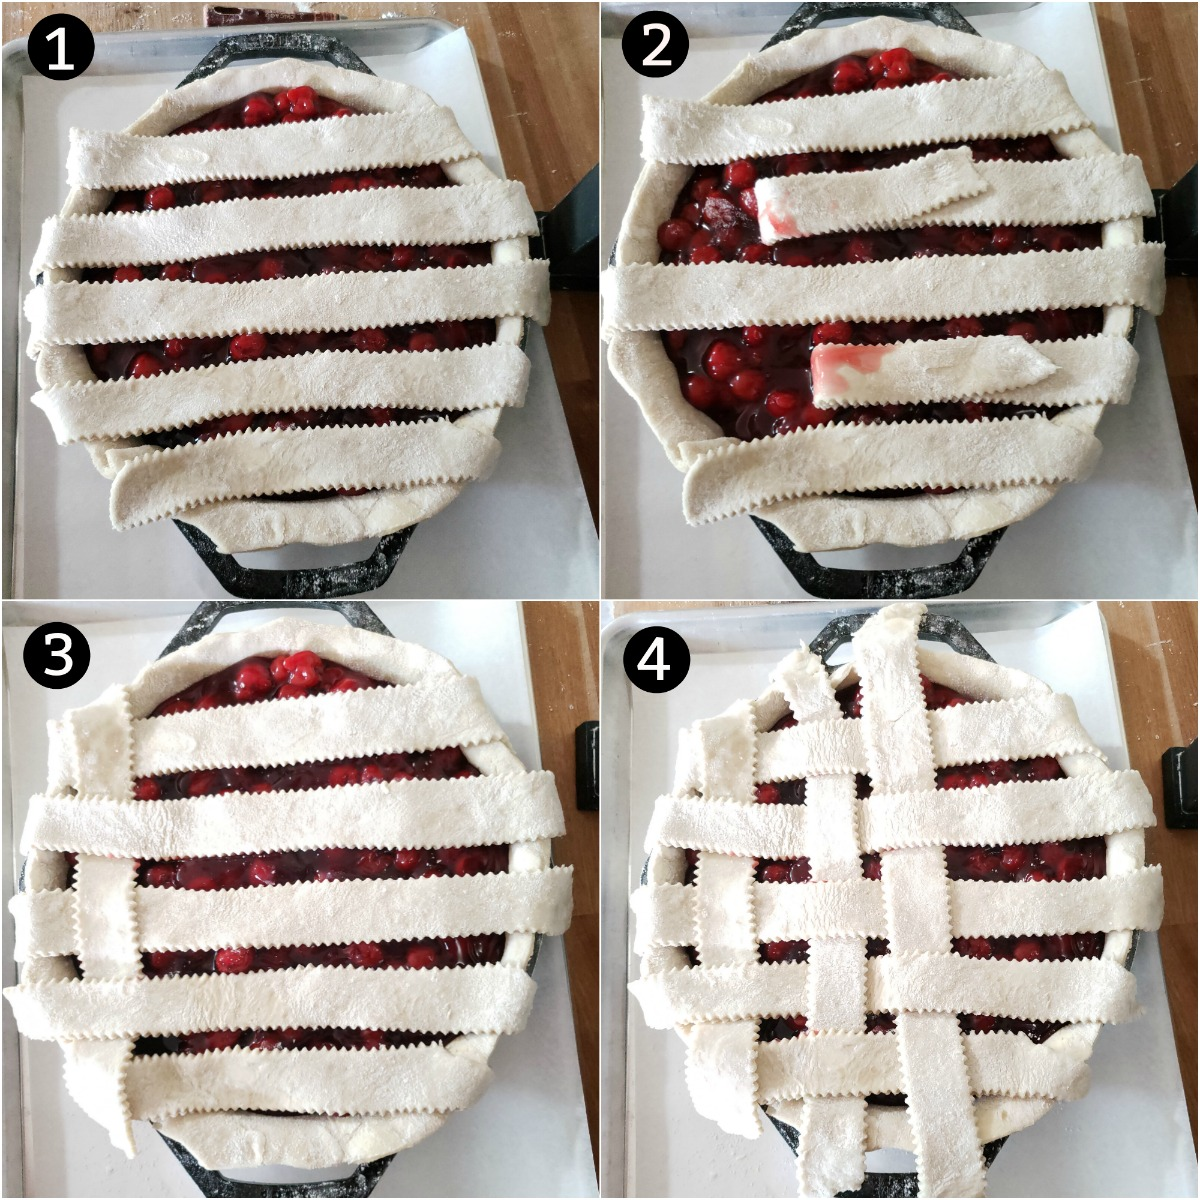 Step images of weaving a lattice pie crust on a cherry pie.